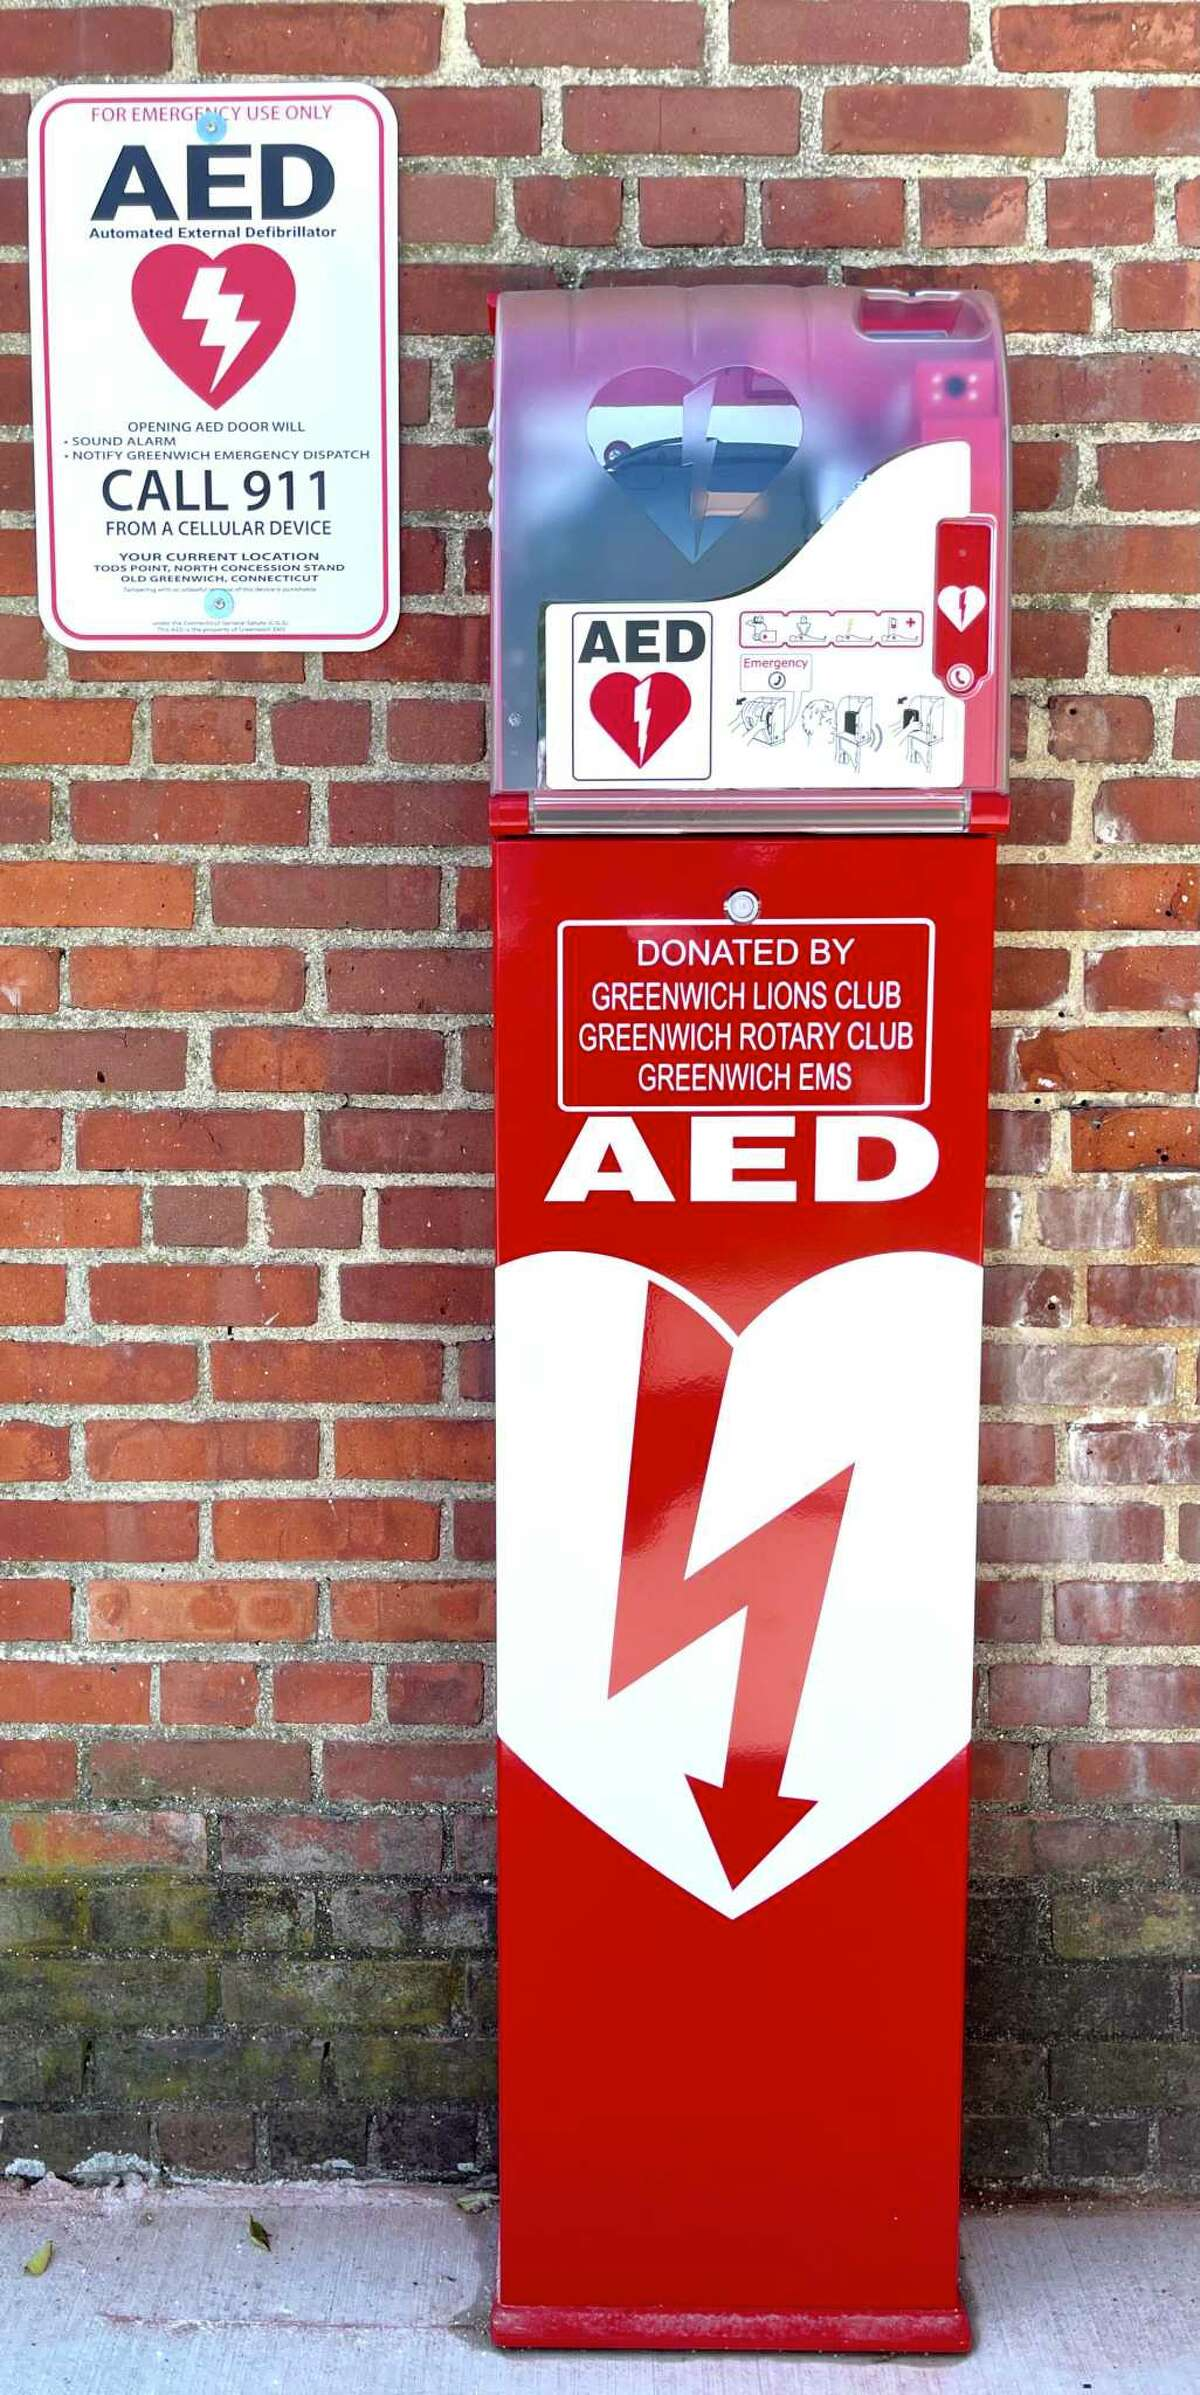 Greenwich Emergency Medical Service, with the help of two other organizations in town, recently purchased the third public-access AED placed at Greenwich Point. GEMS leaders said they're following a recommendation from the American Heart Association, which advises that an AED be placed within a three-minute walk from where any cardiac arrest incident could occur.